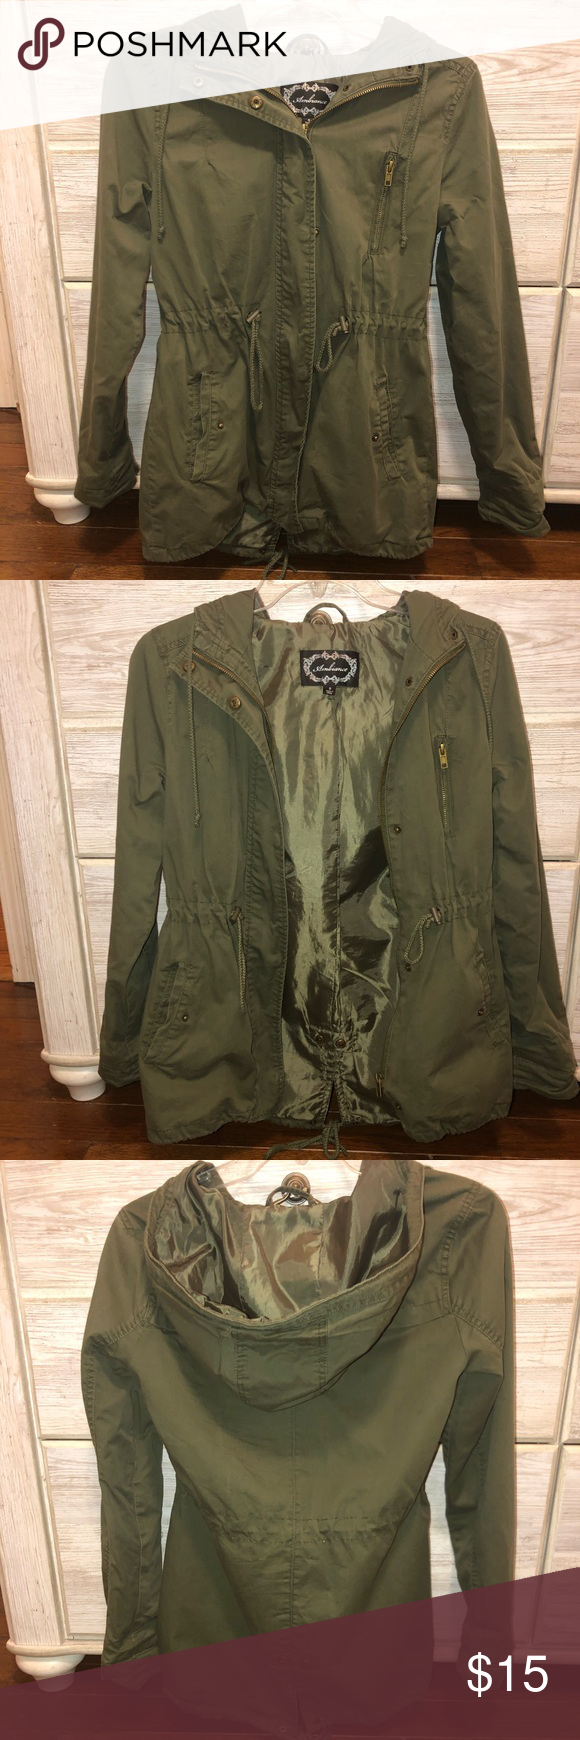 Ambiance Green Jacket With Pockets Green Jacket Jackets Clothes Design [ 1740 x 580 Pixel ]